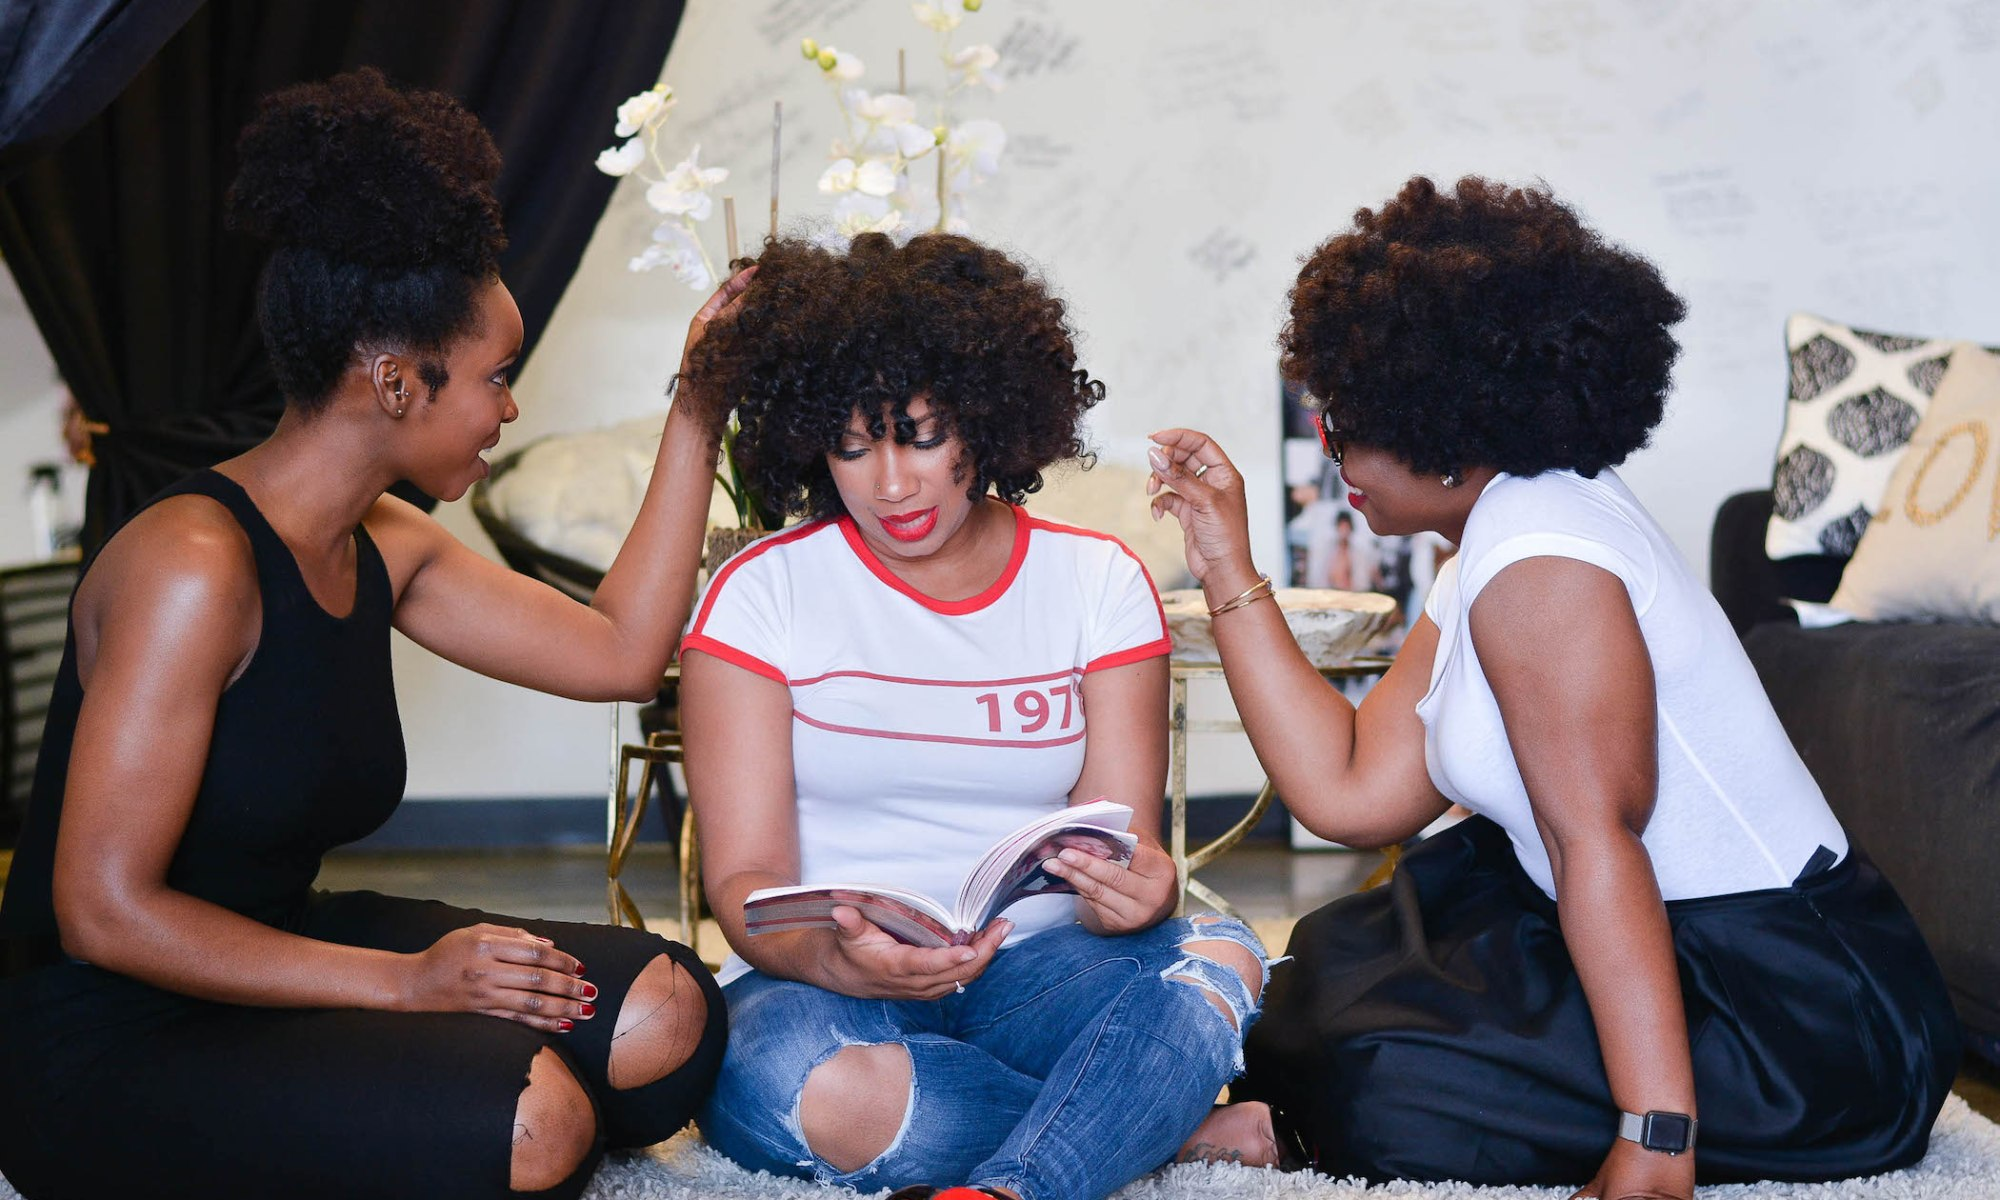 Women with natural hairstyles, enjoying each other's company.